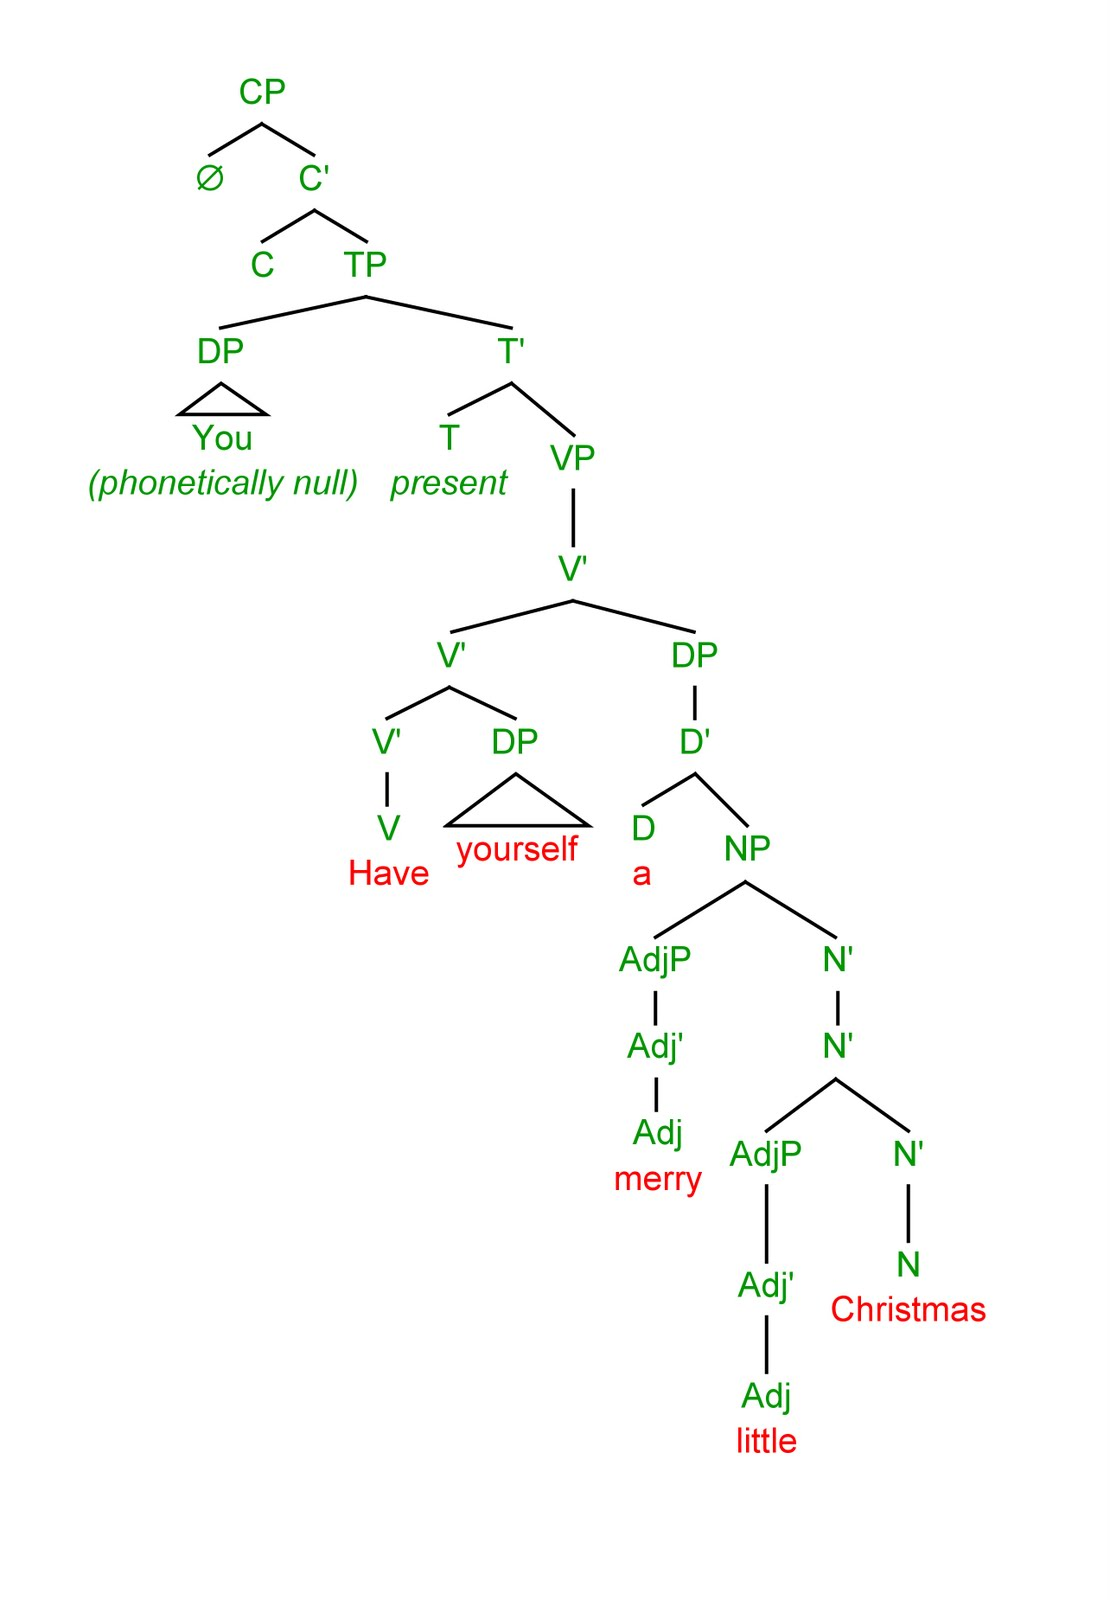 A Walk in the WoRds : Merry Christmas Syntax Tree